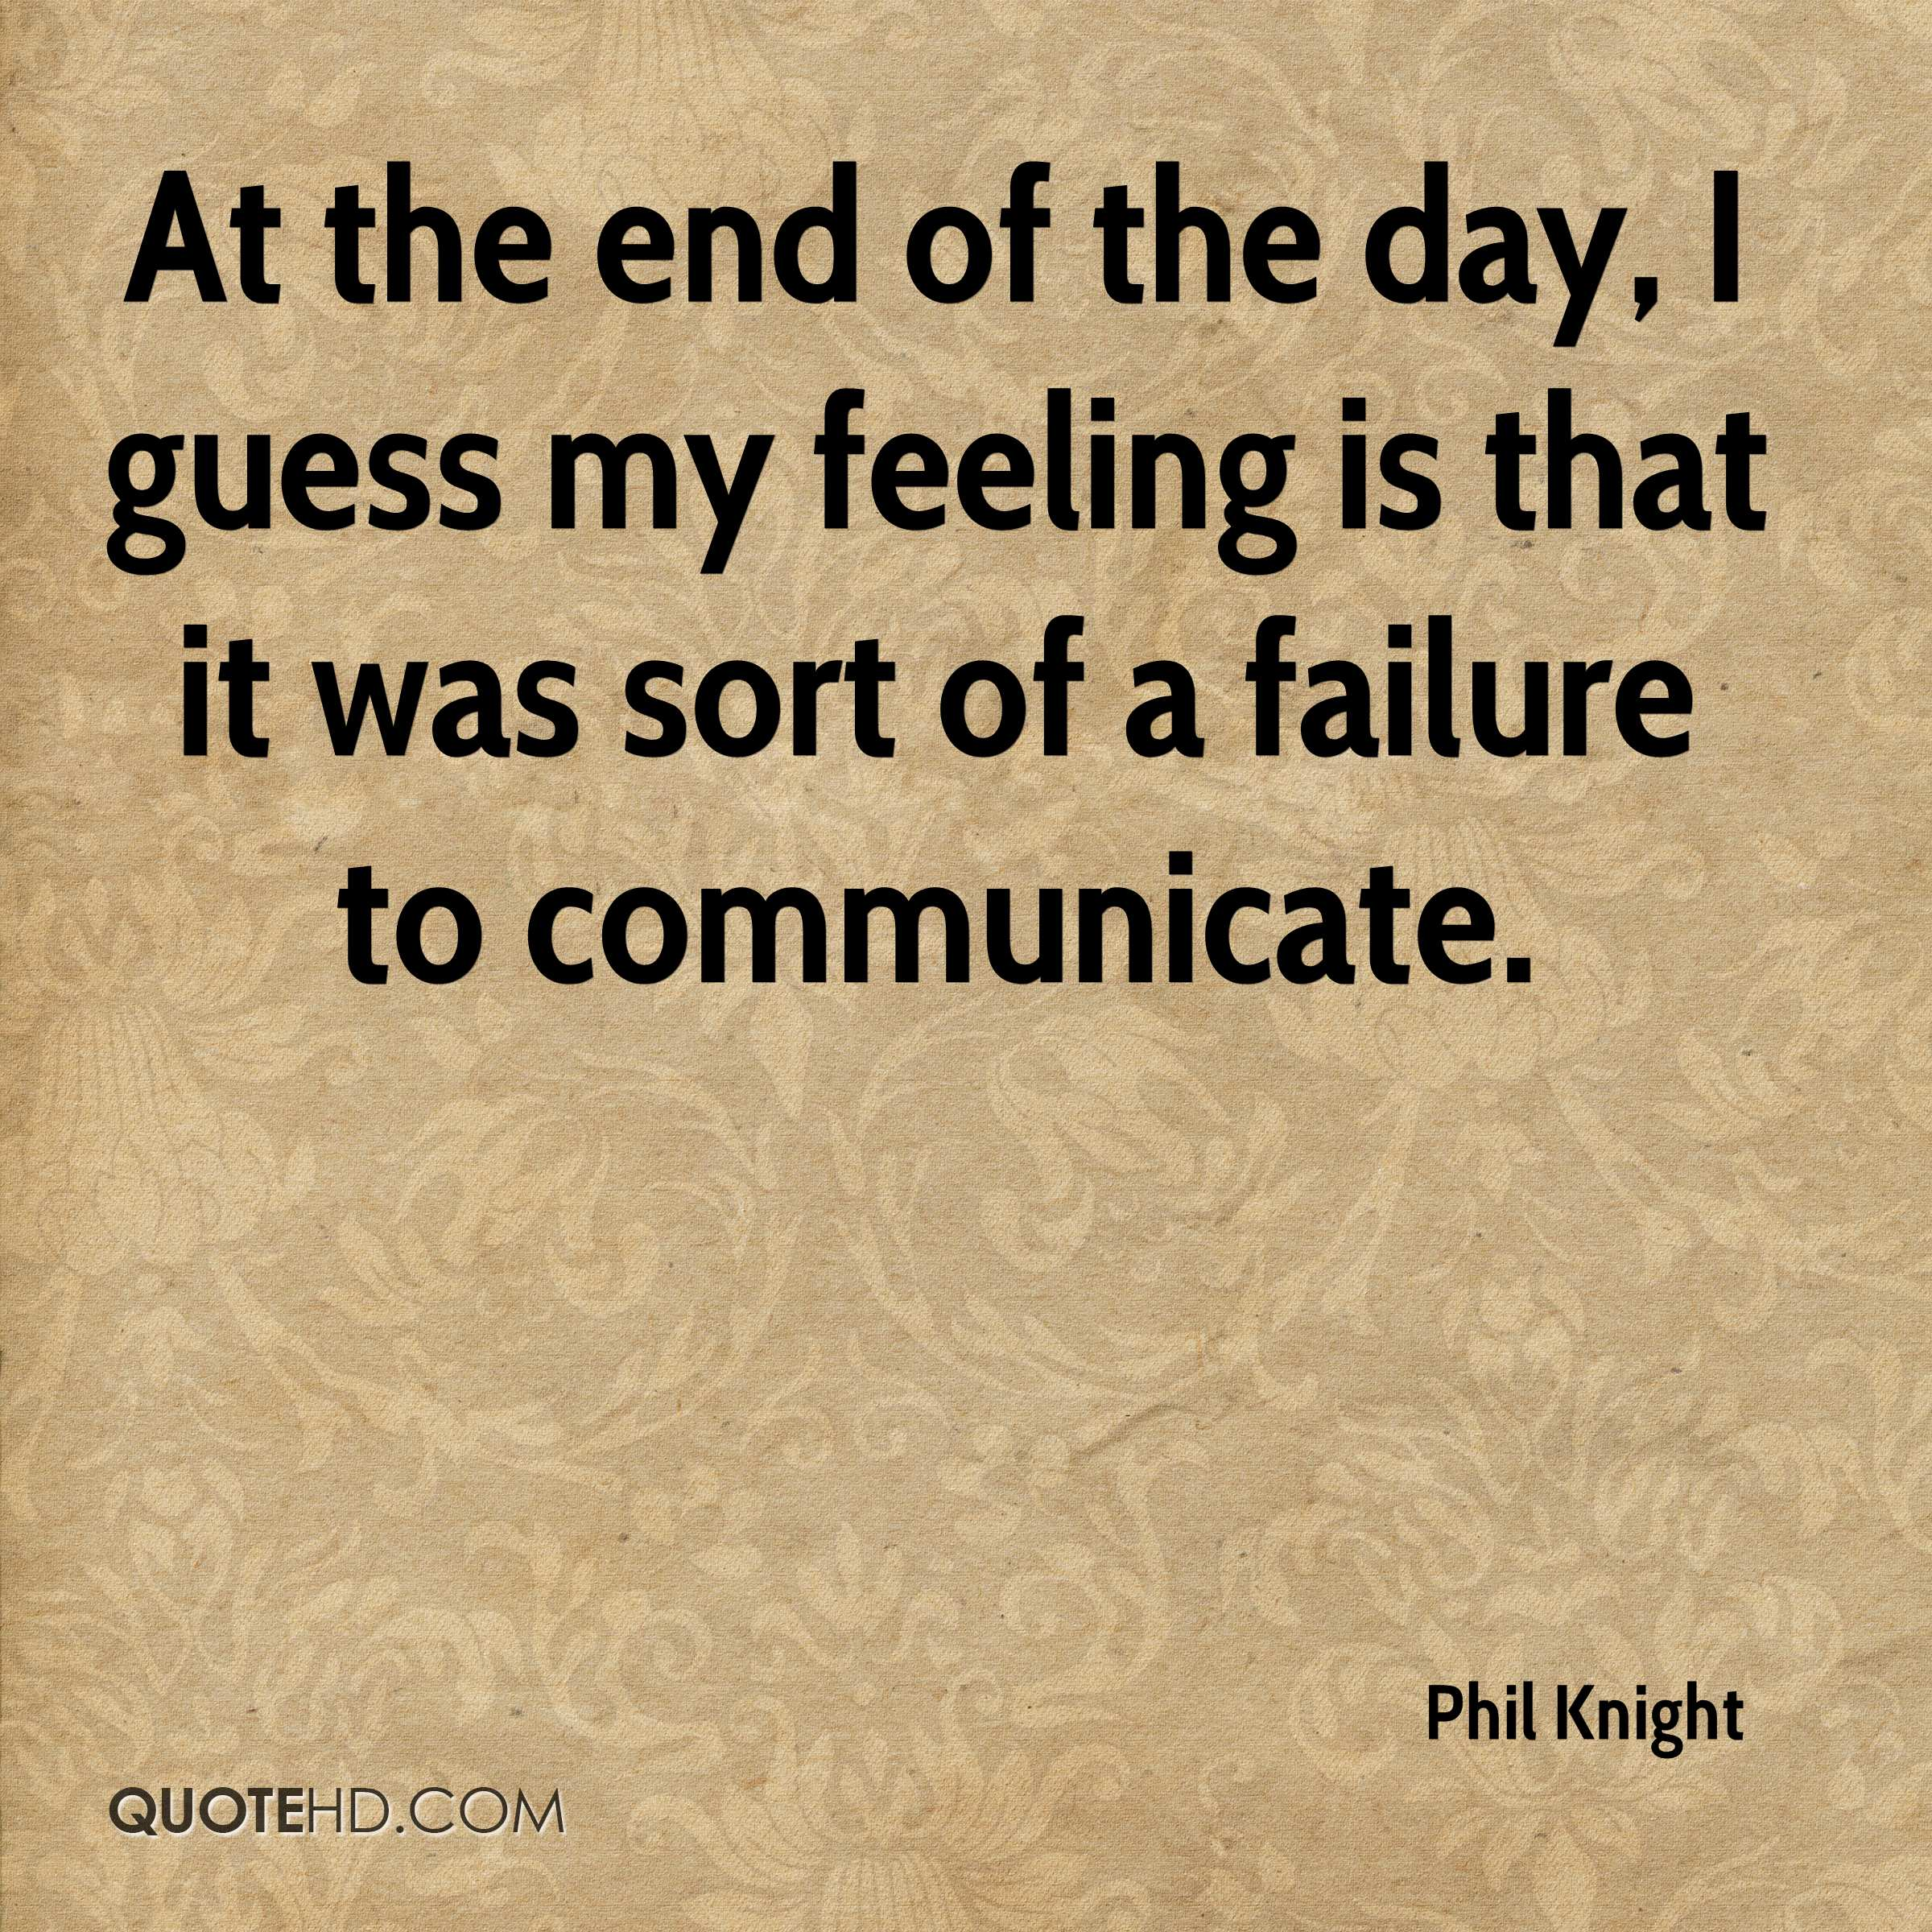 At the end of the day, I guess my feeling is that it was sort of a failure to communicate.